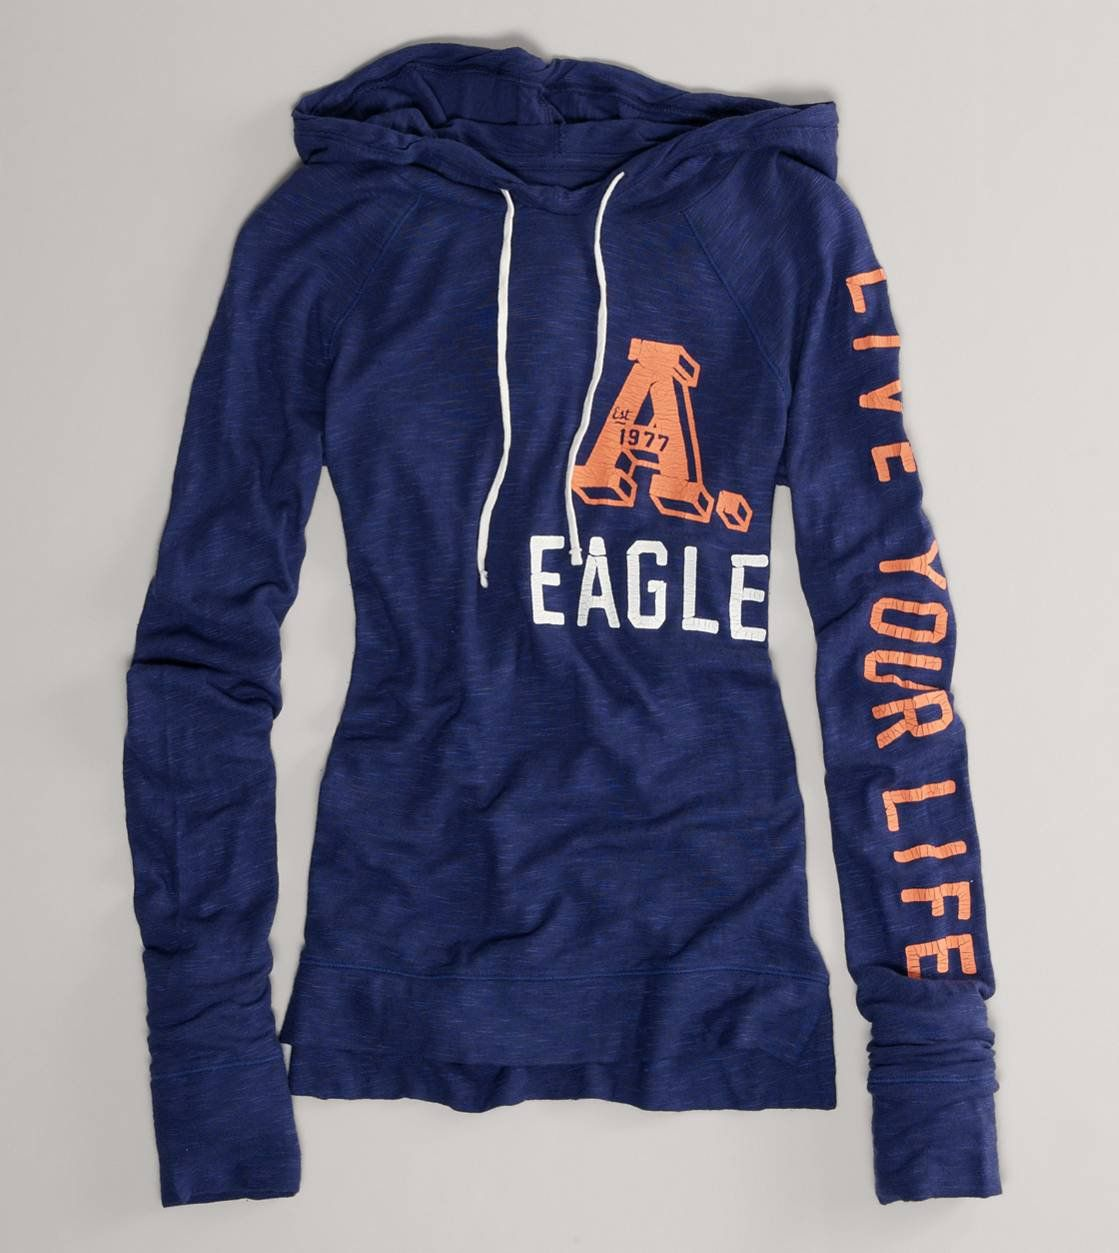 best 25 american eagle clothing ideas on